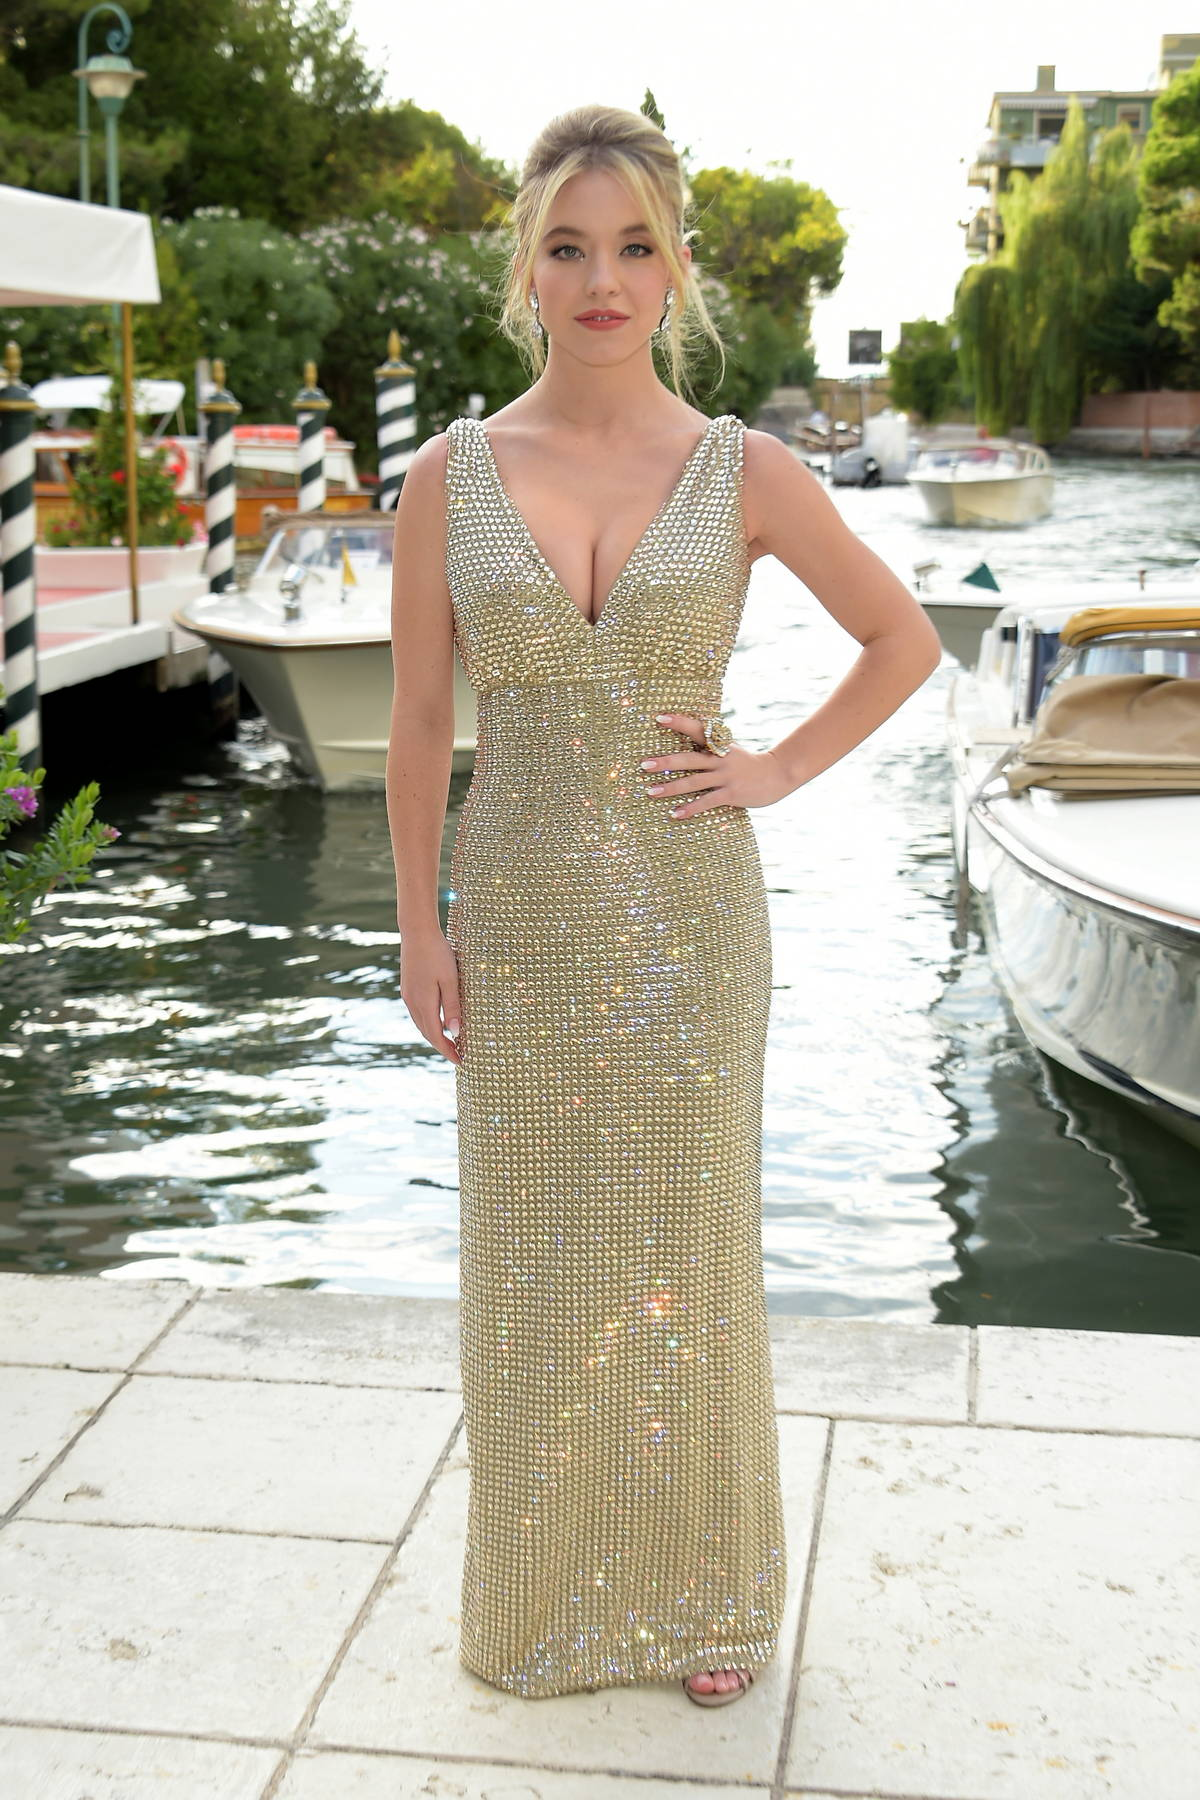 Sydney Sweeney looks stunning in a sparkly dress while attending the Dolce & Gabbana fashion show in Venice, Italy